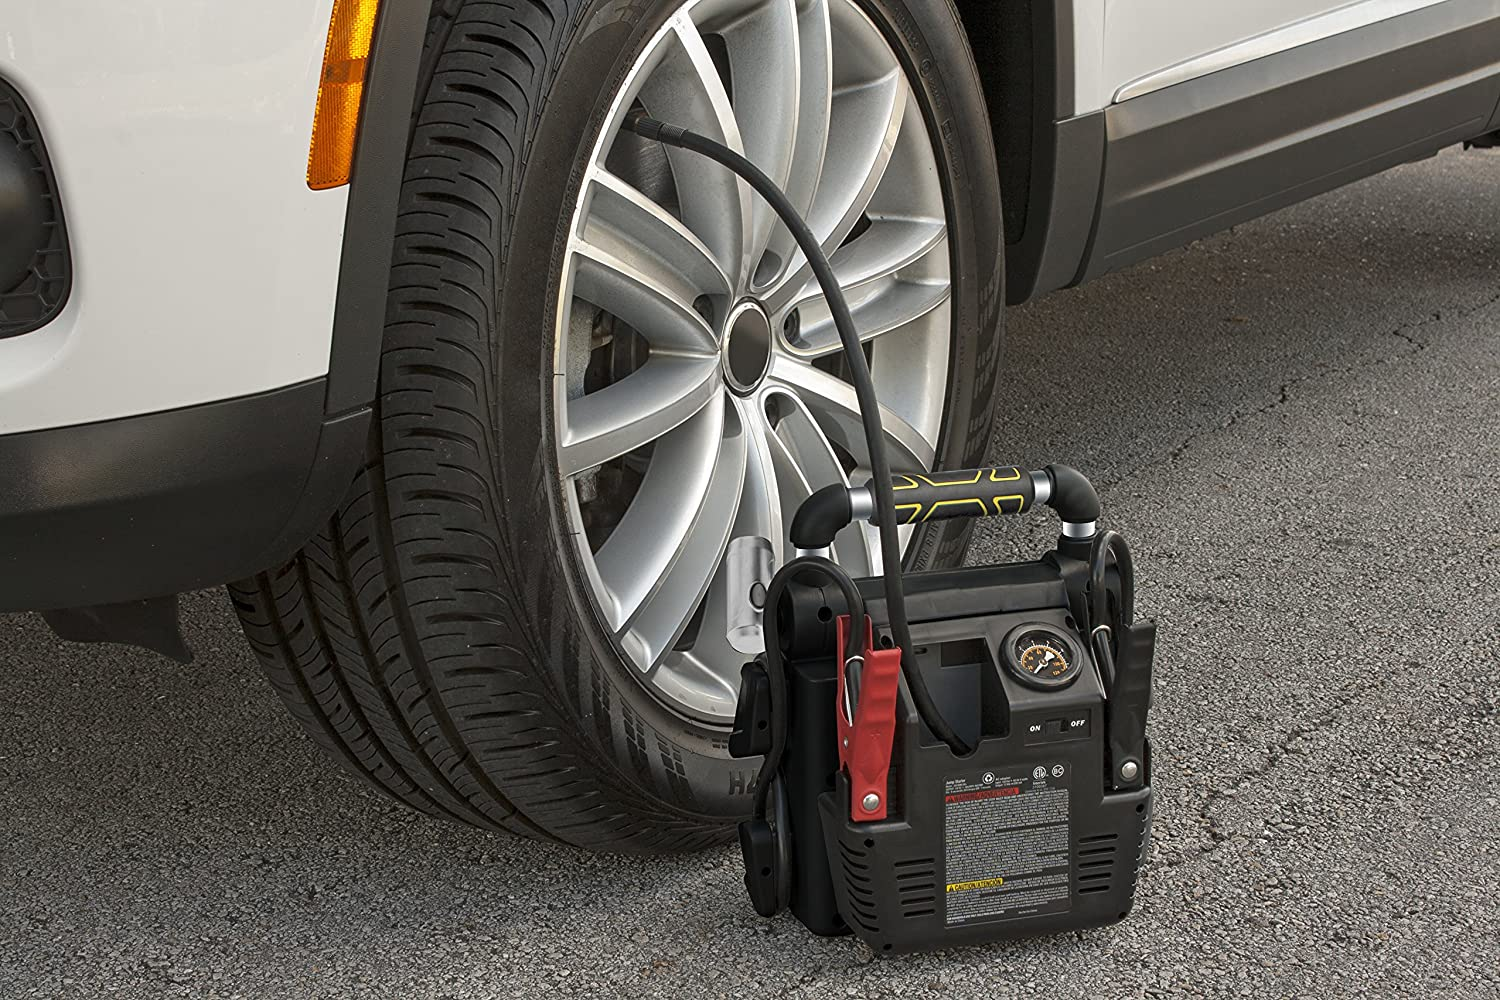 What are some tips for buying a Jump Starter air compressor?